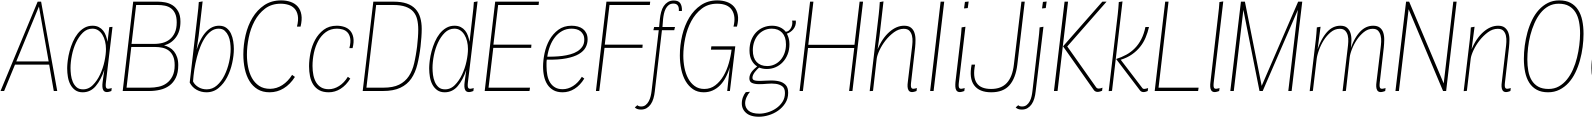 Air Condensed Thin Italic Font